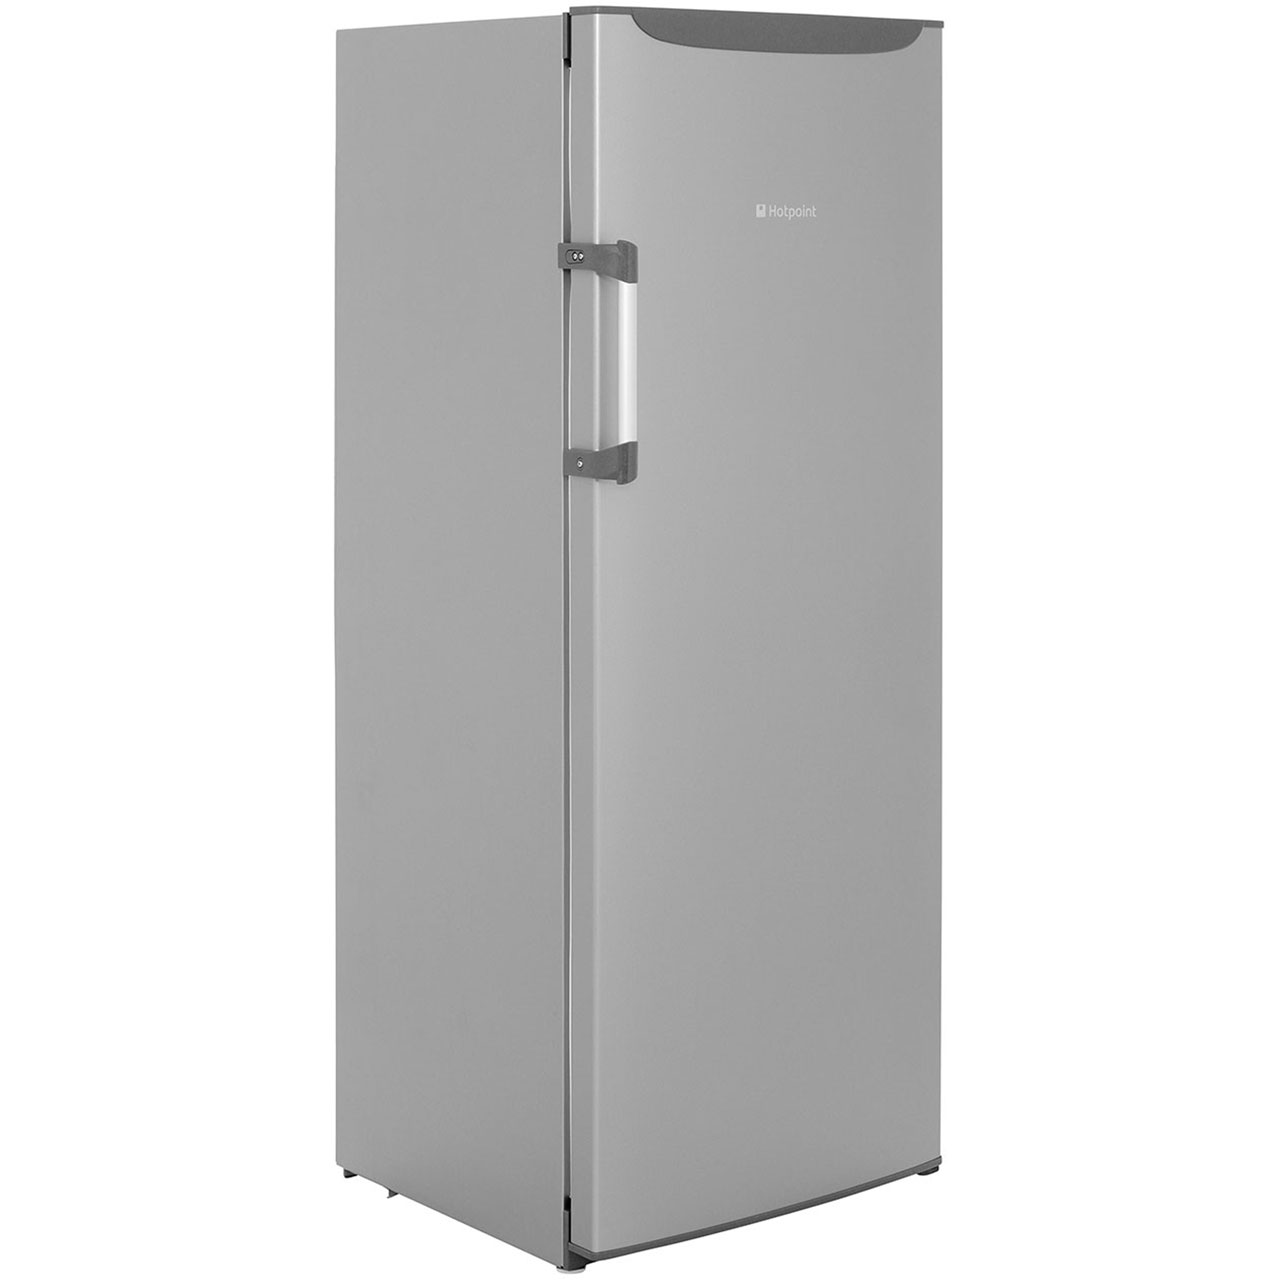 Hotpoint RLFM151G Fridge - Graphite